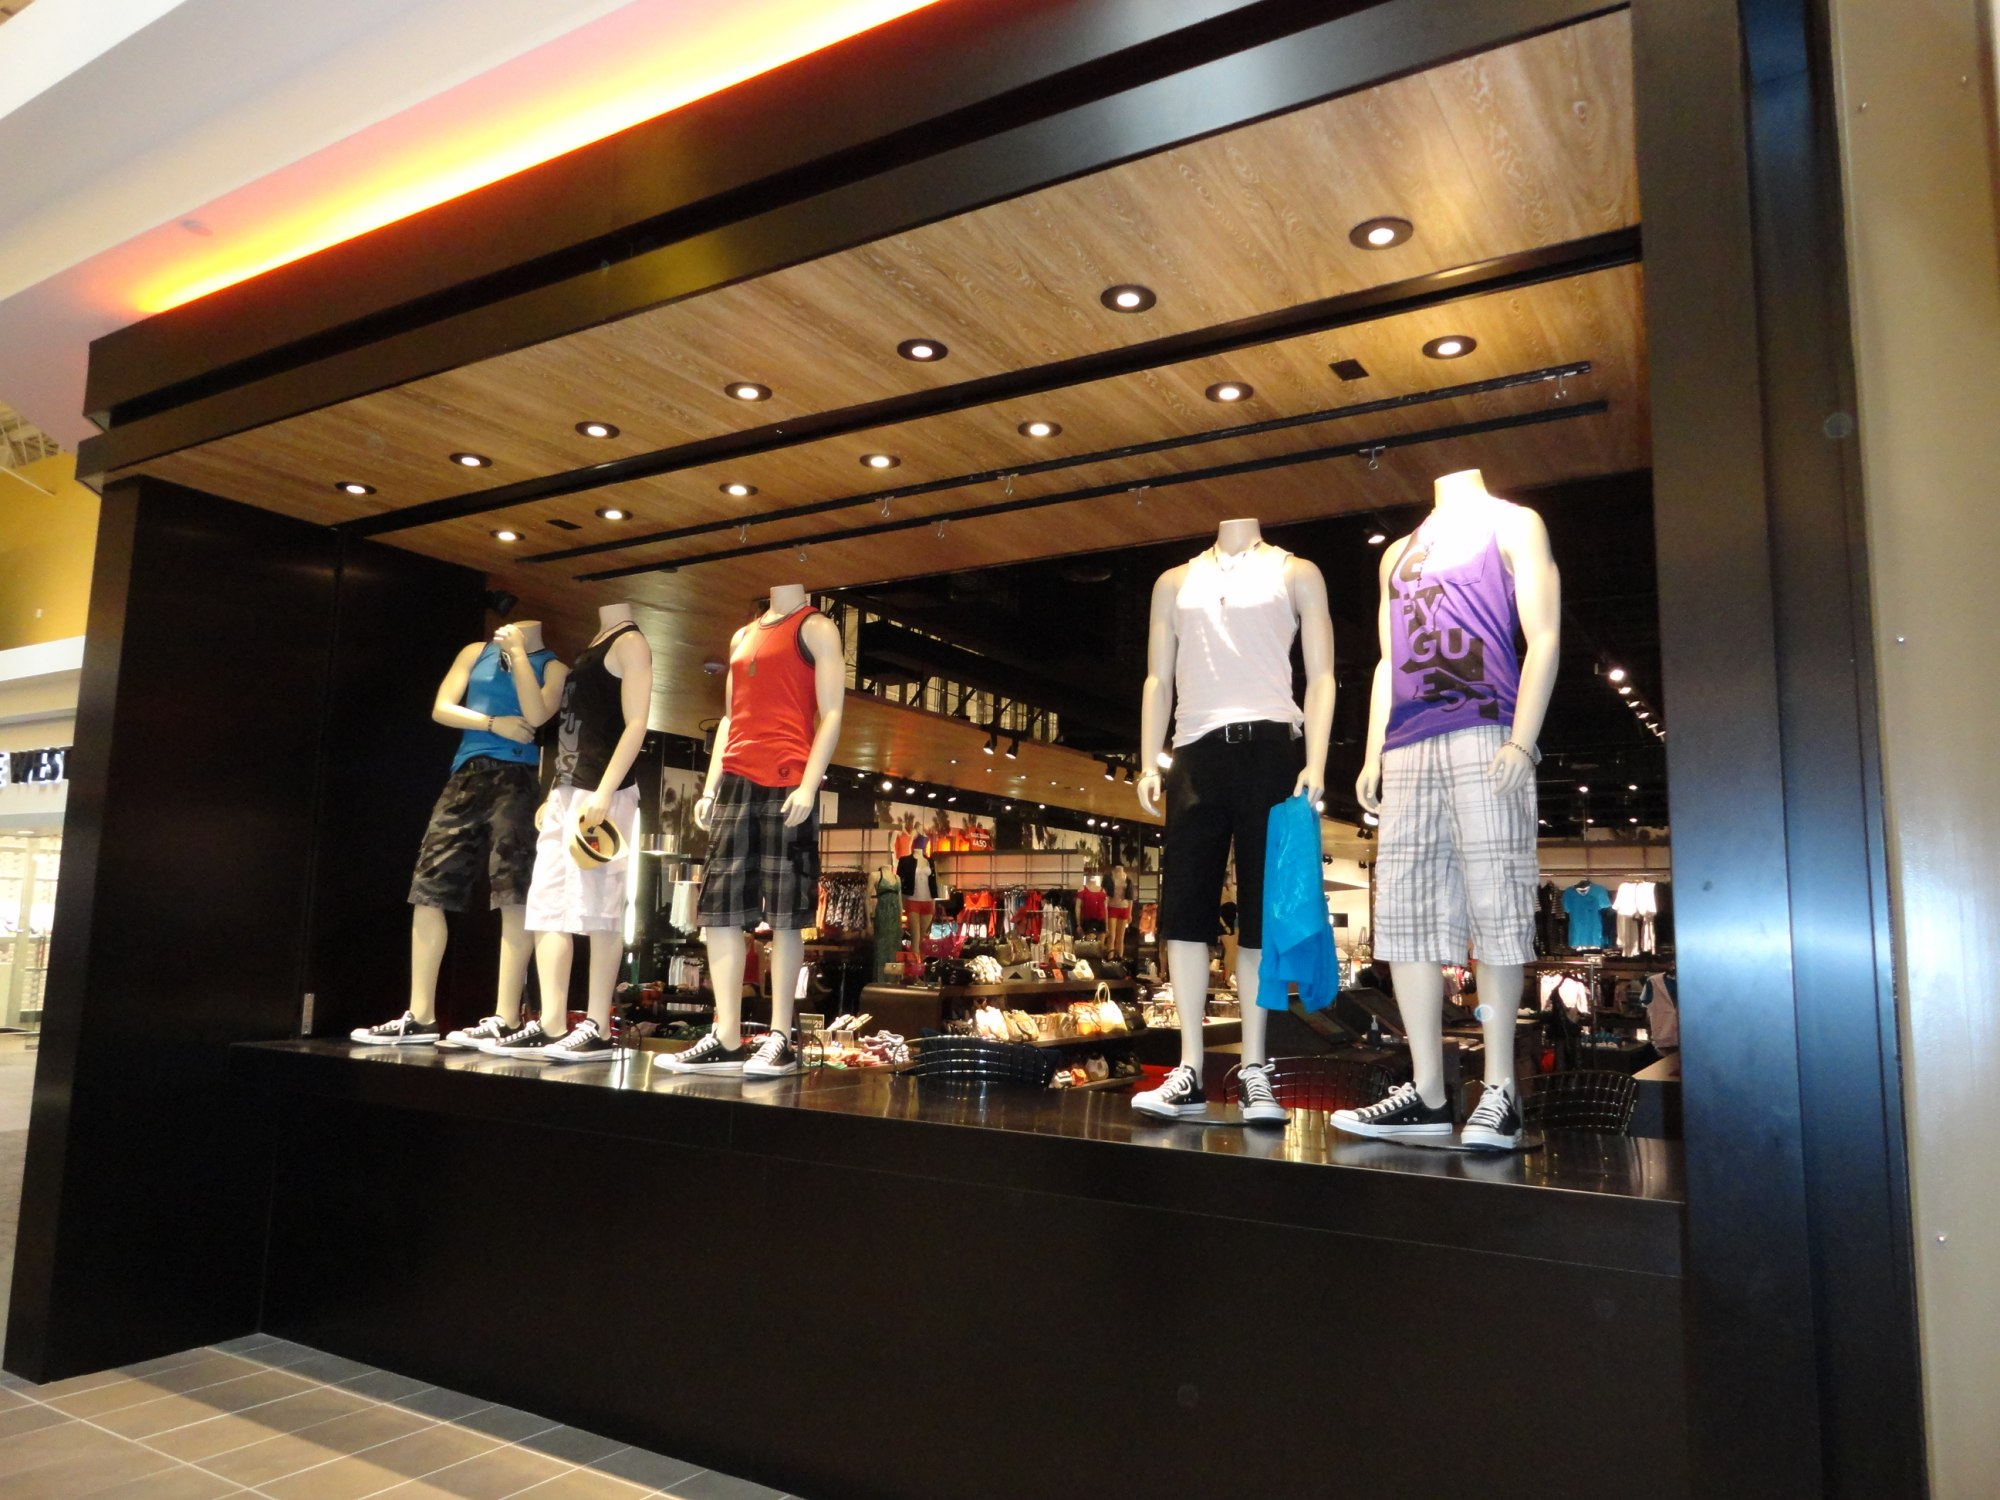 The new store display window